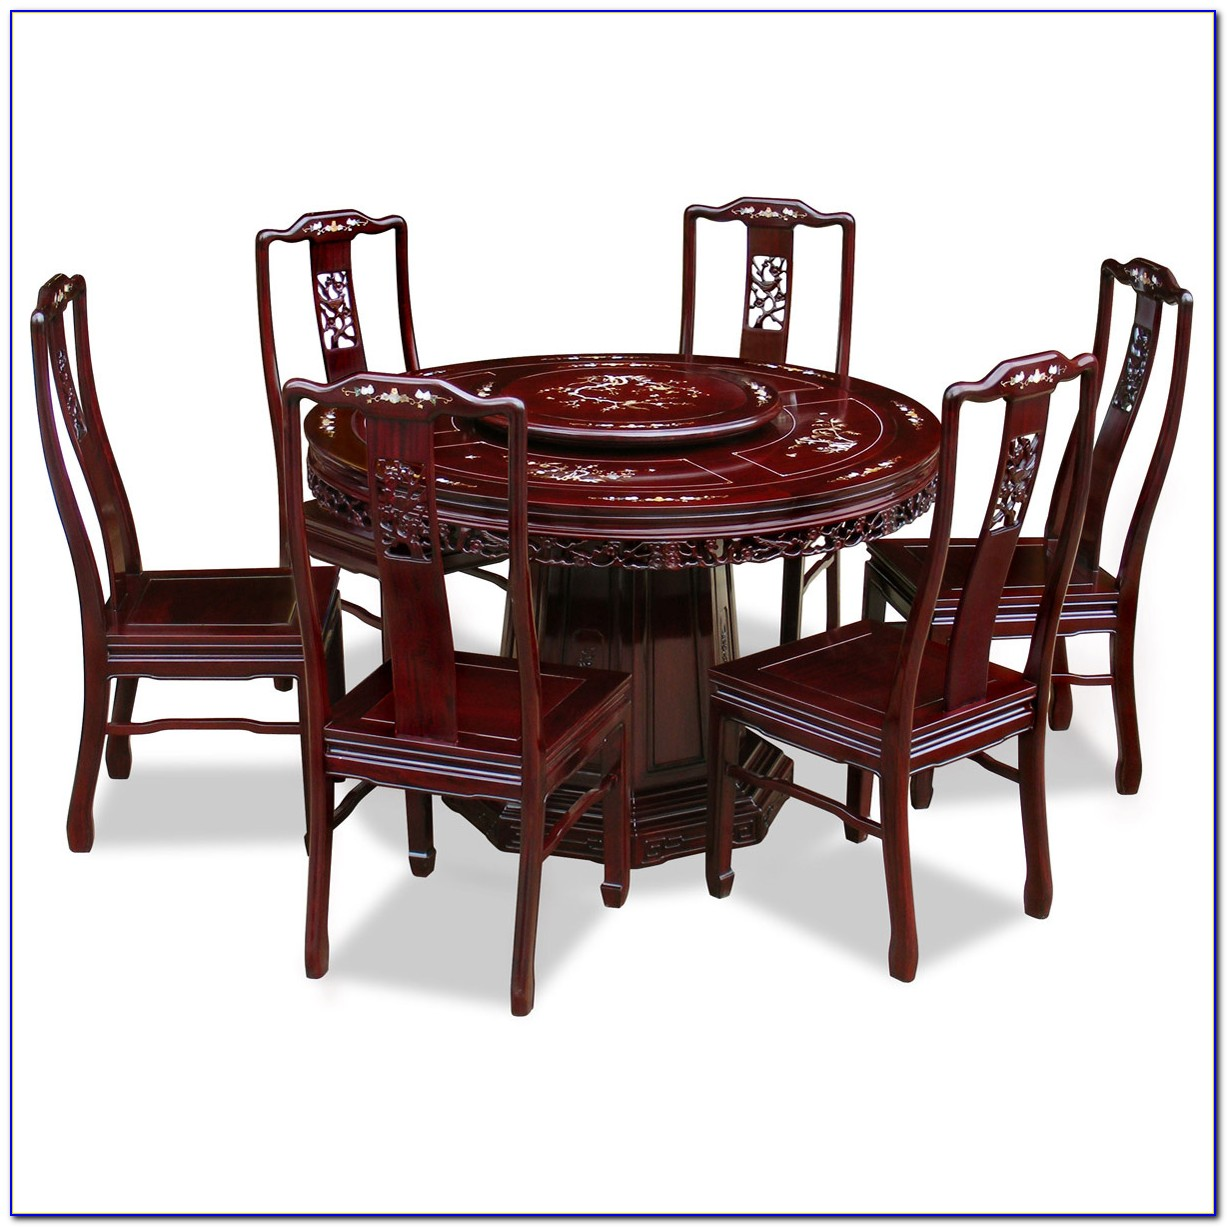 Round Table With 6 Chairs Size